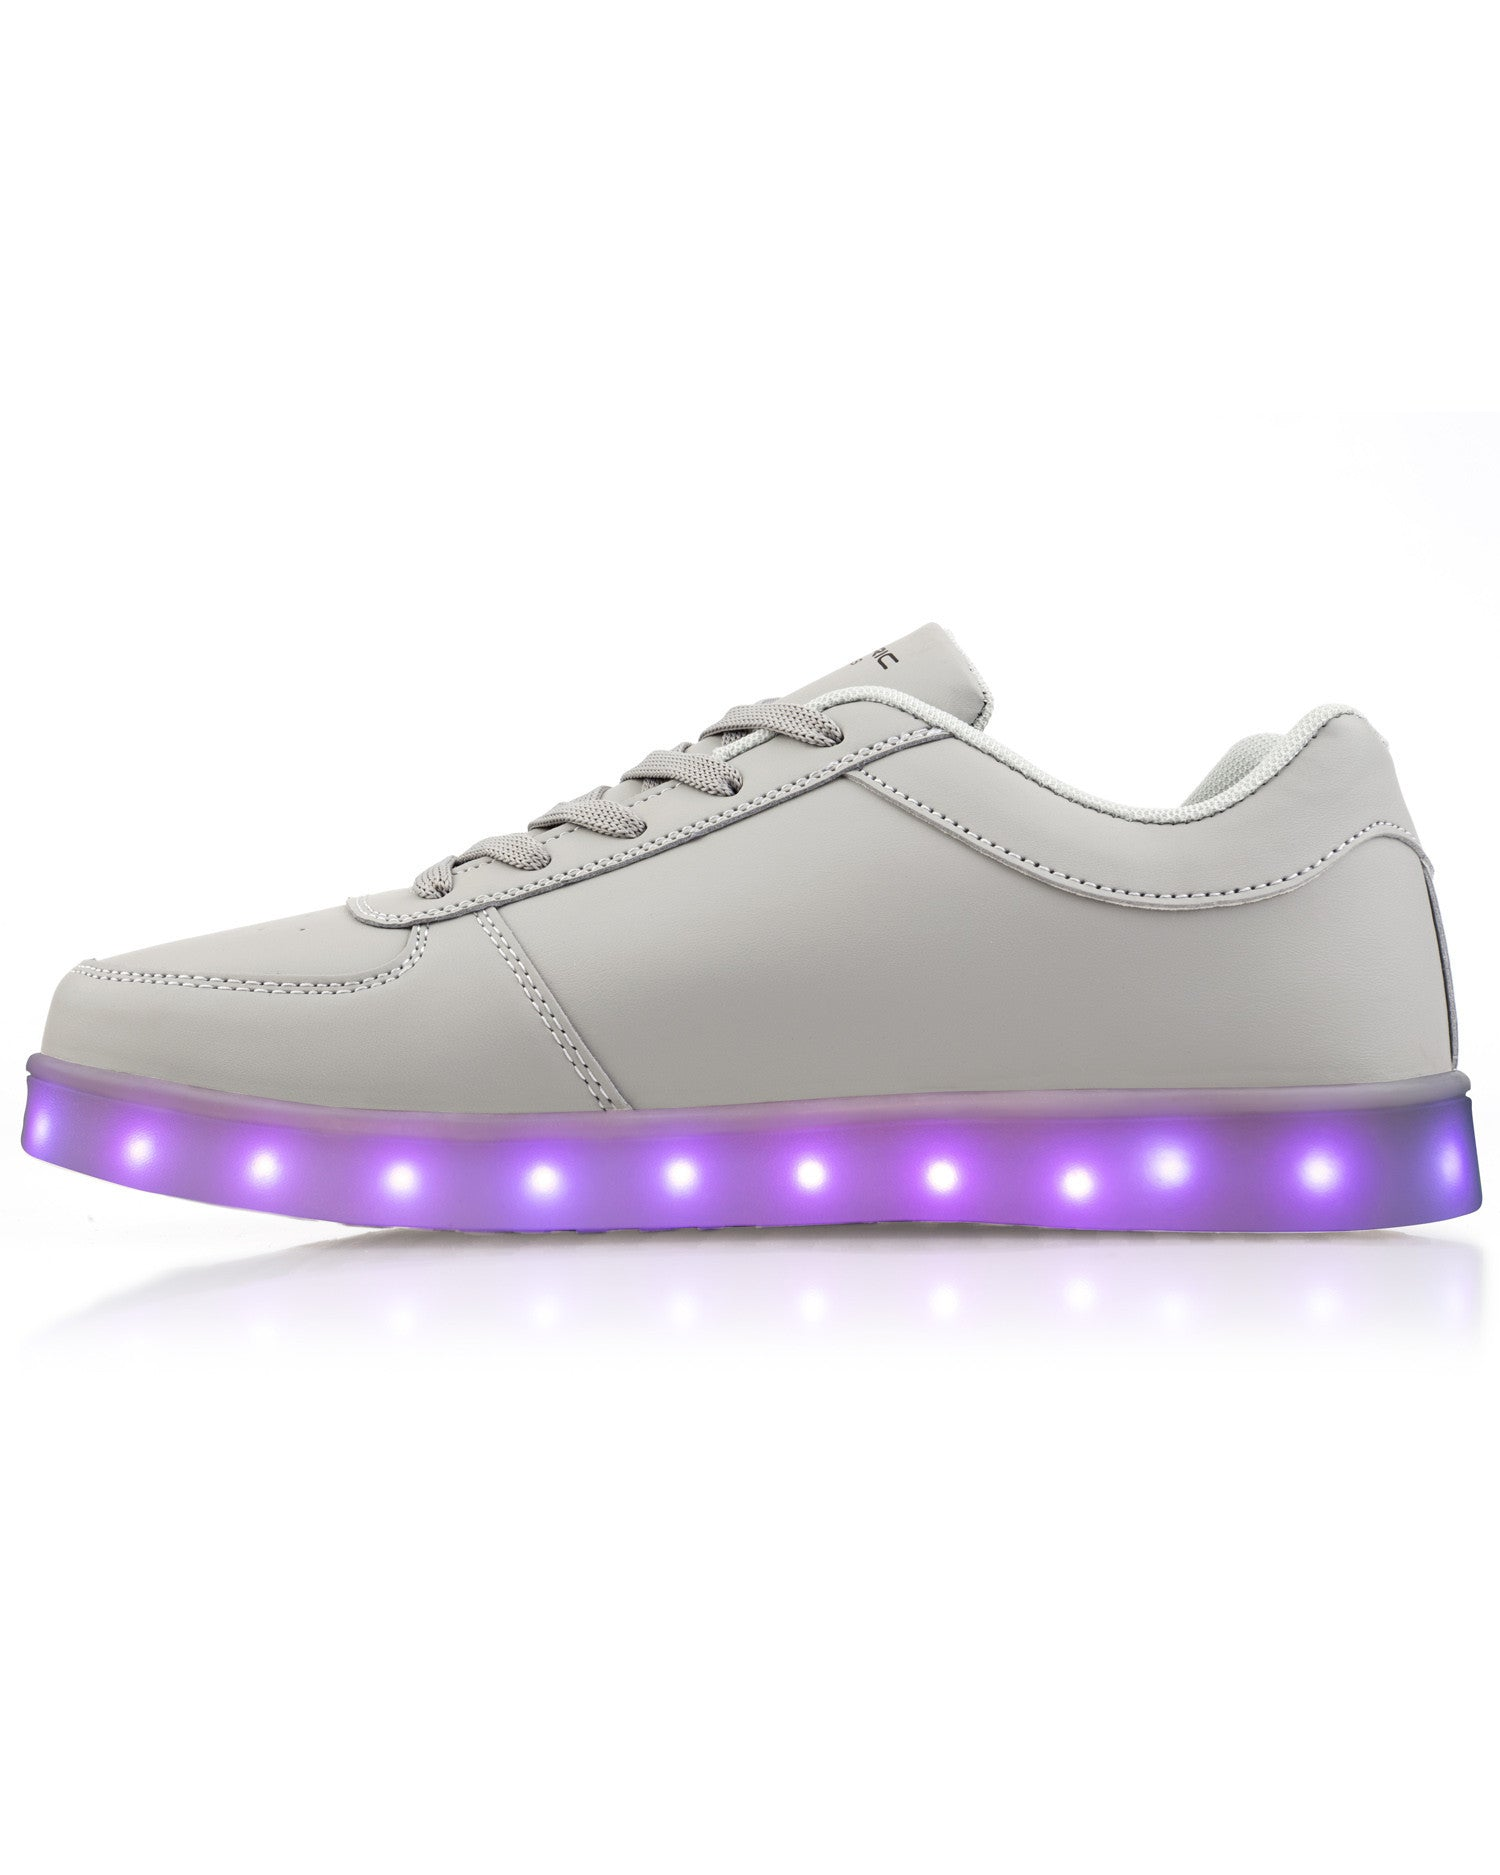 Electric Shoes - The Original - Electric Styles | World's Number 1 Light Up Shoe Store - {product_type}} -  - 18